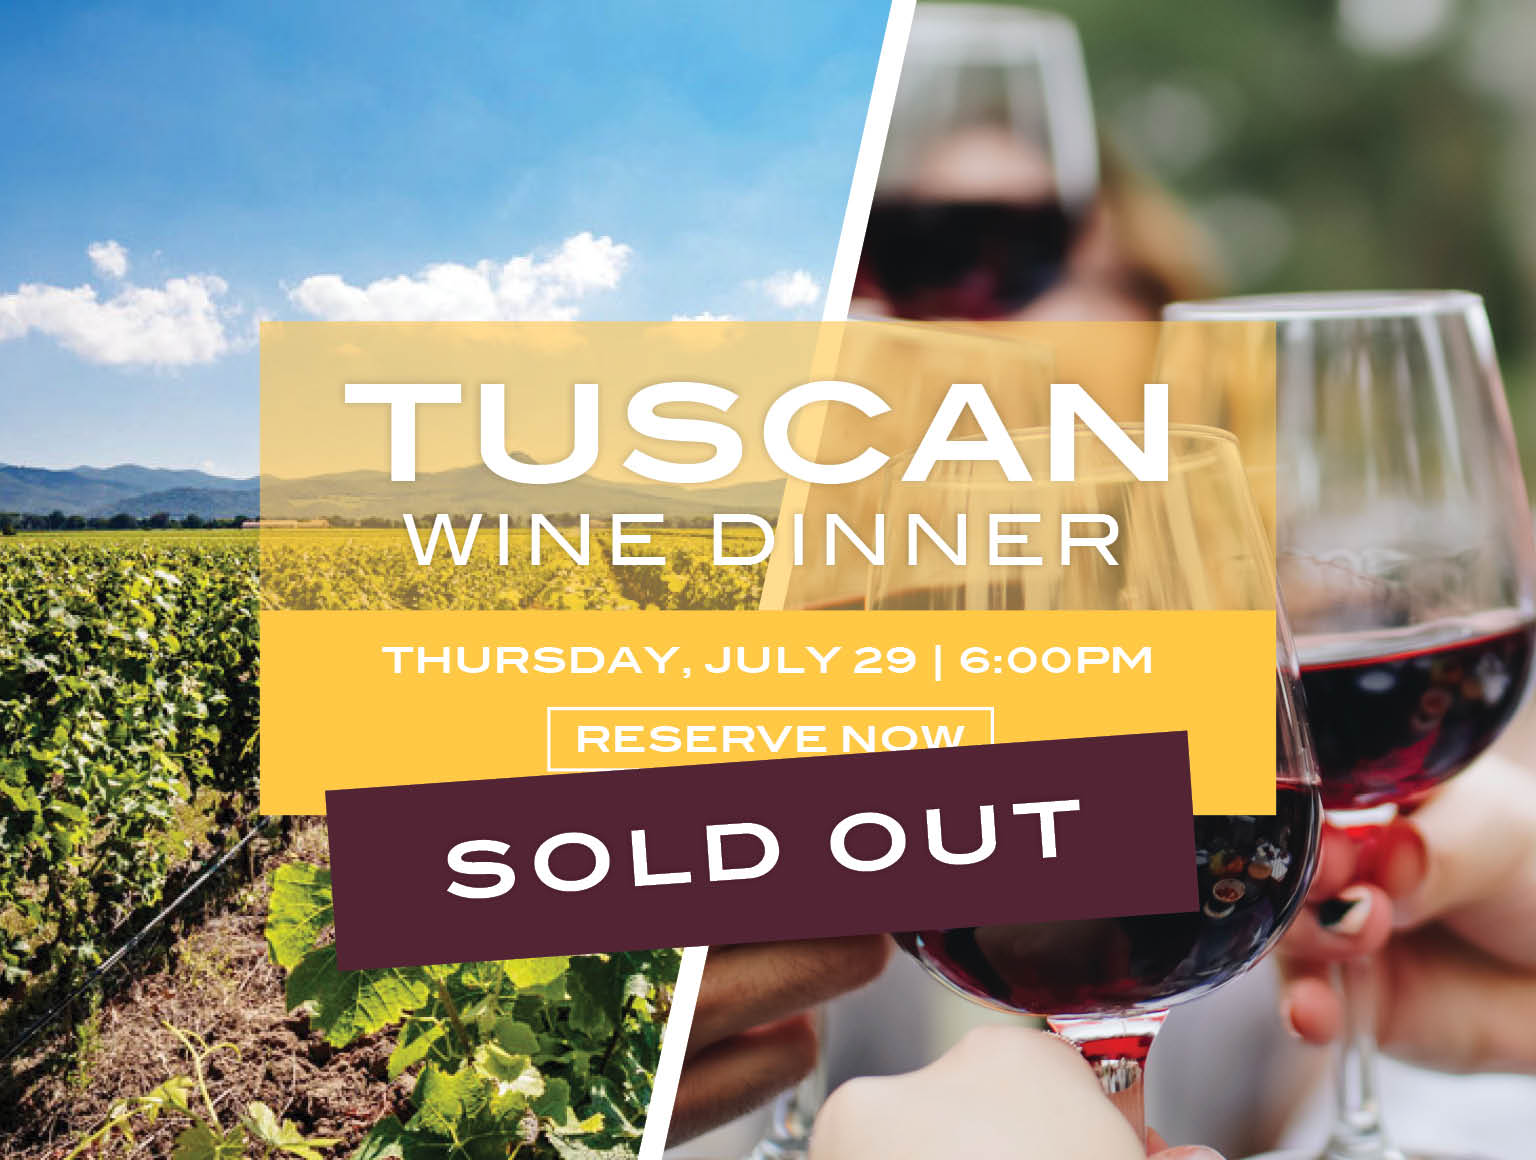 Tuscan Wine Dinner Thursday, July 29 2021 | Buy Tickets Now